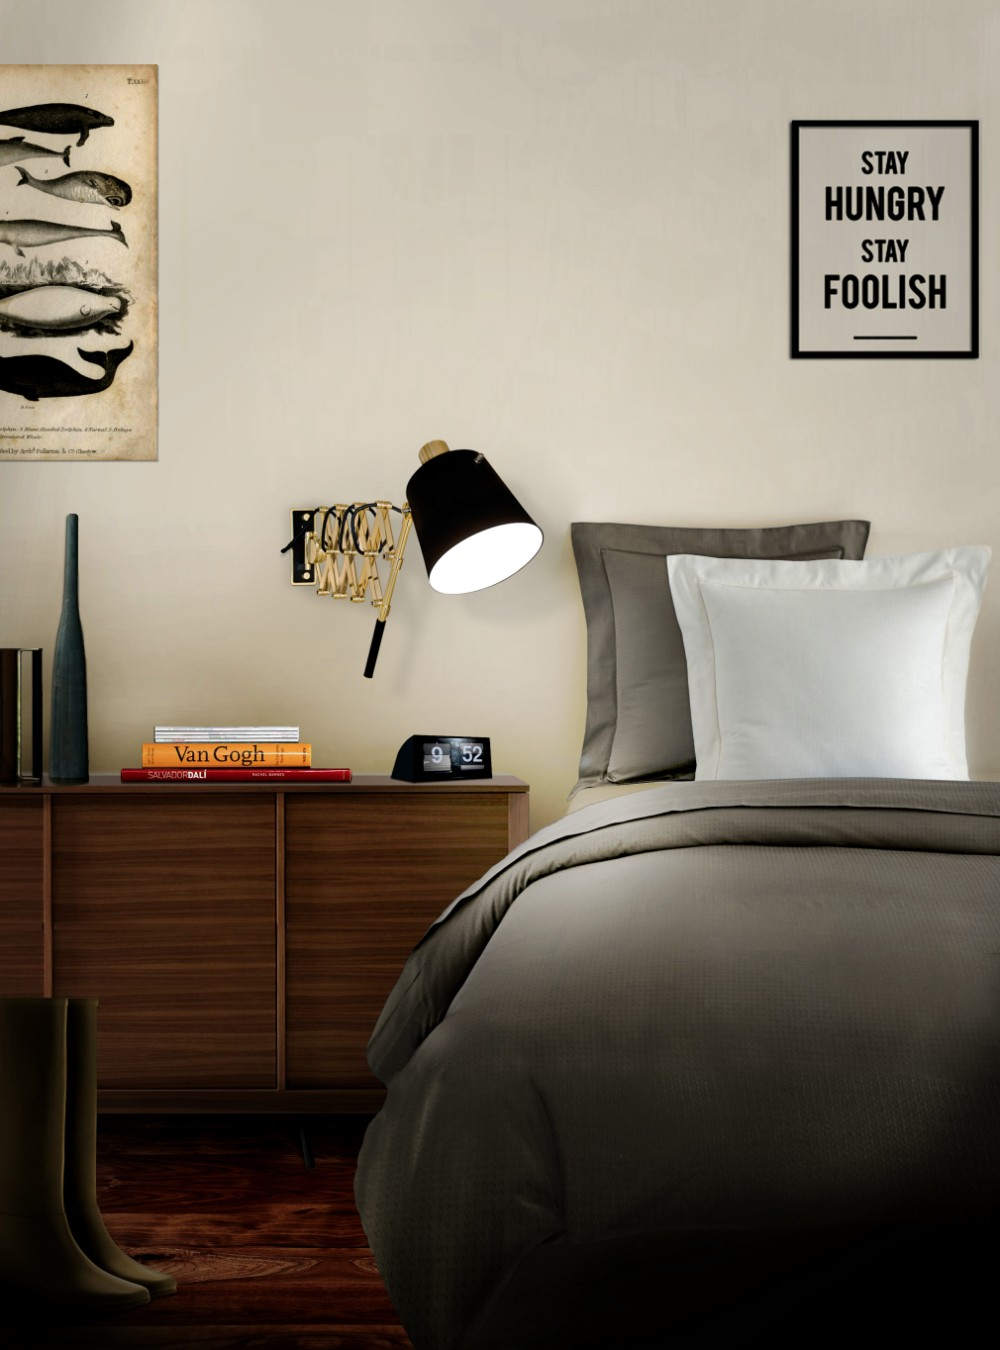 Explore the best way to you build the perfect mid-century bedroom mid-century bedroom Explore the best way to you build the perfect mid-century bedroom Explore the best way to you build the perfect mid century bedroom1